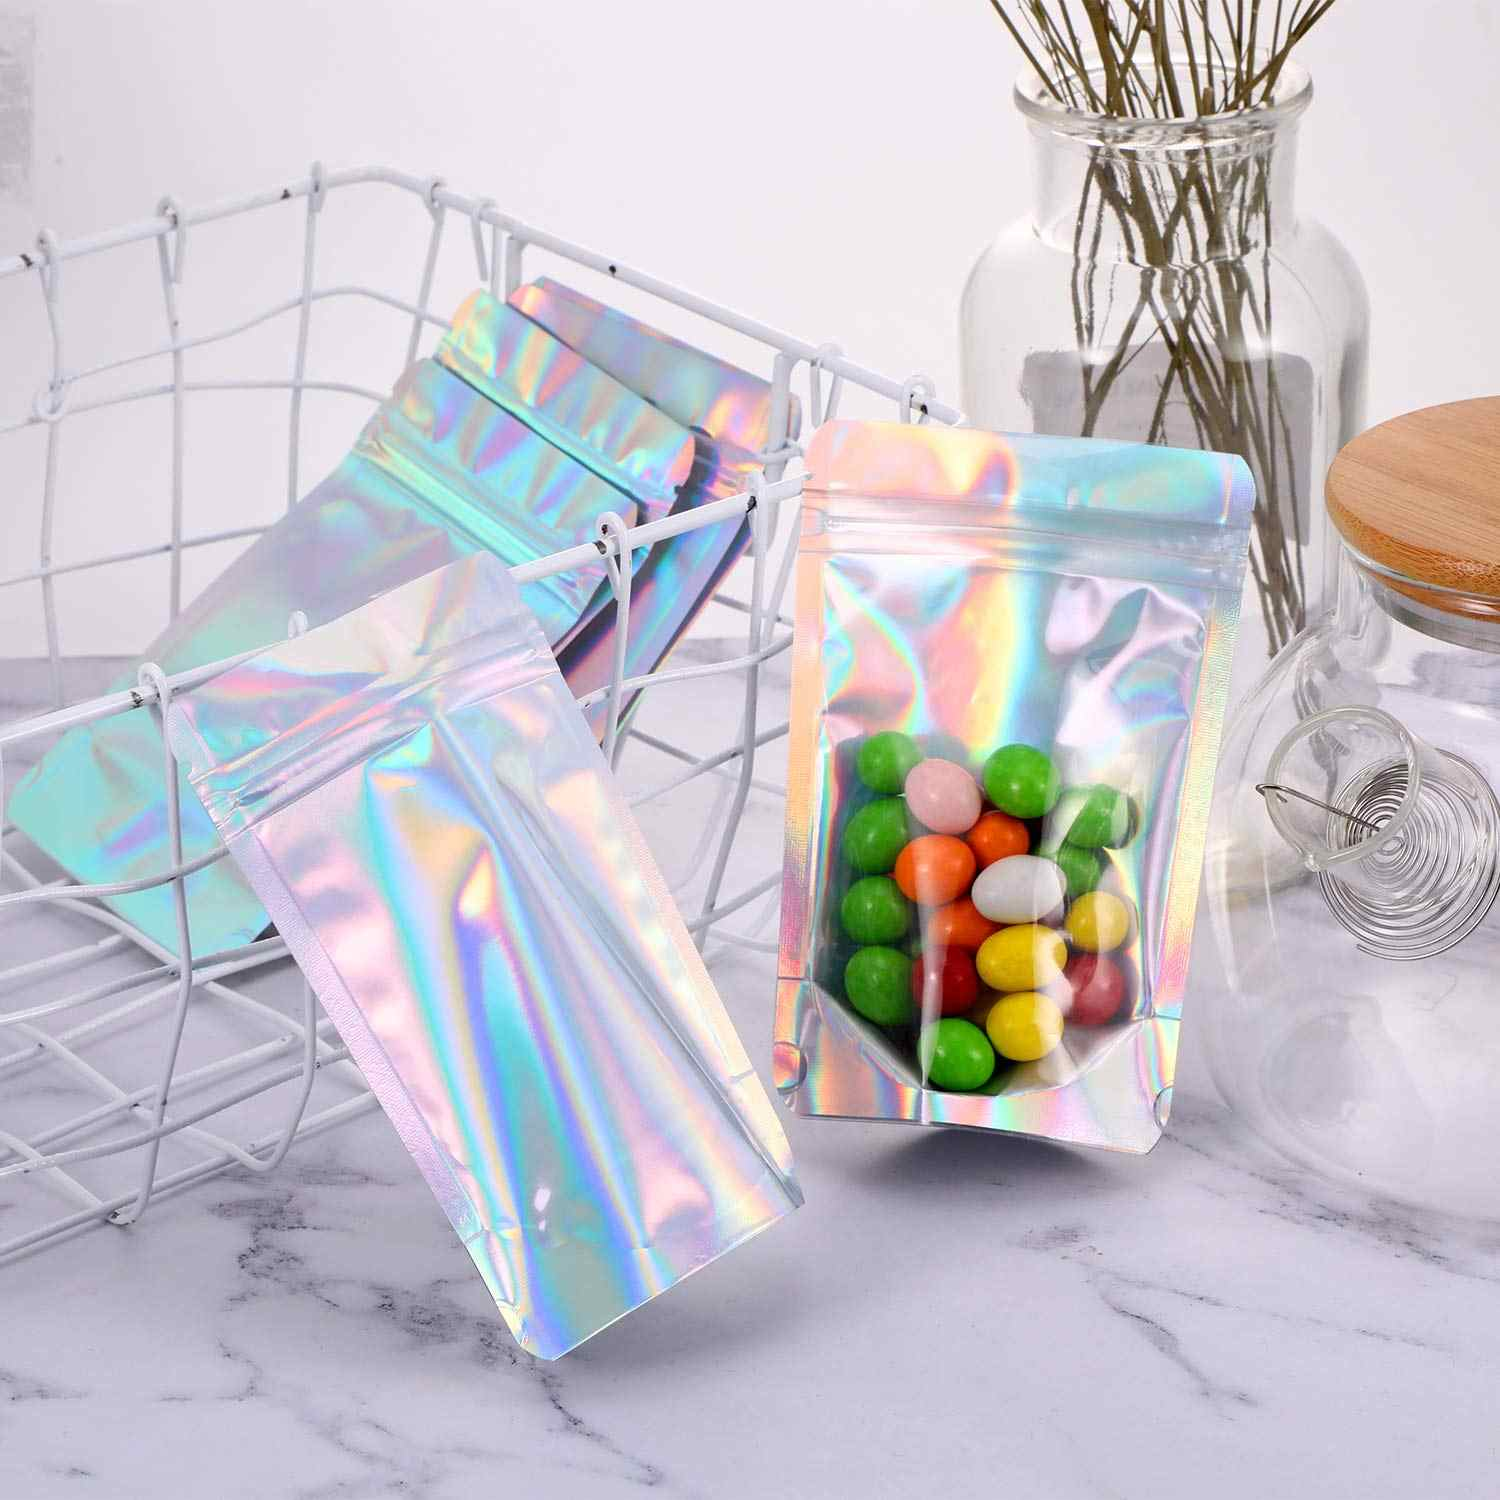 50pcs Laser Aluminum Foil Mylar Zip Lock Pouch Clear Hologram Rainbow Stand Up Zip Lock Plastic Packaging Bag with Tear Notch